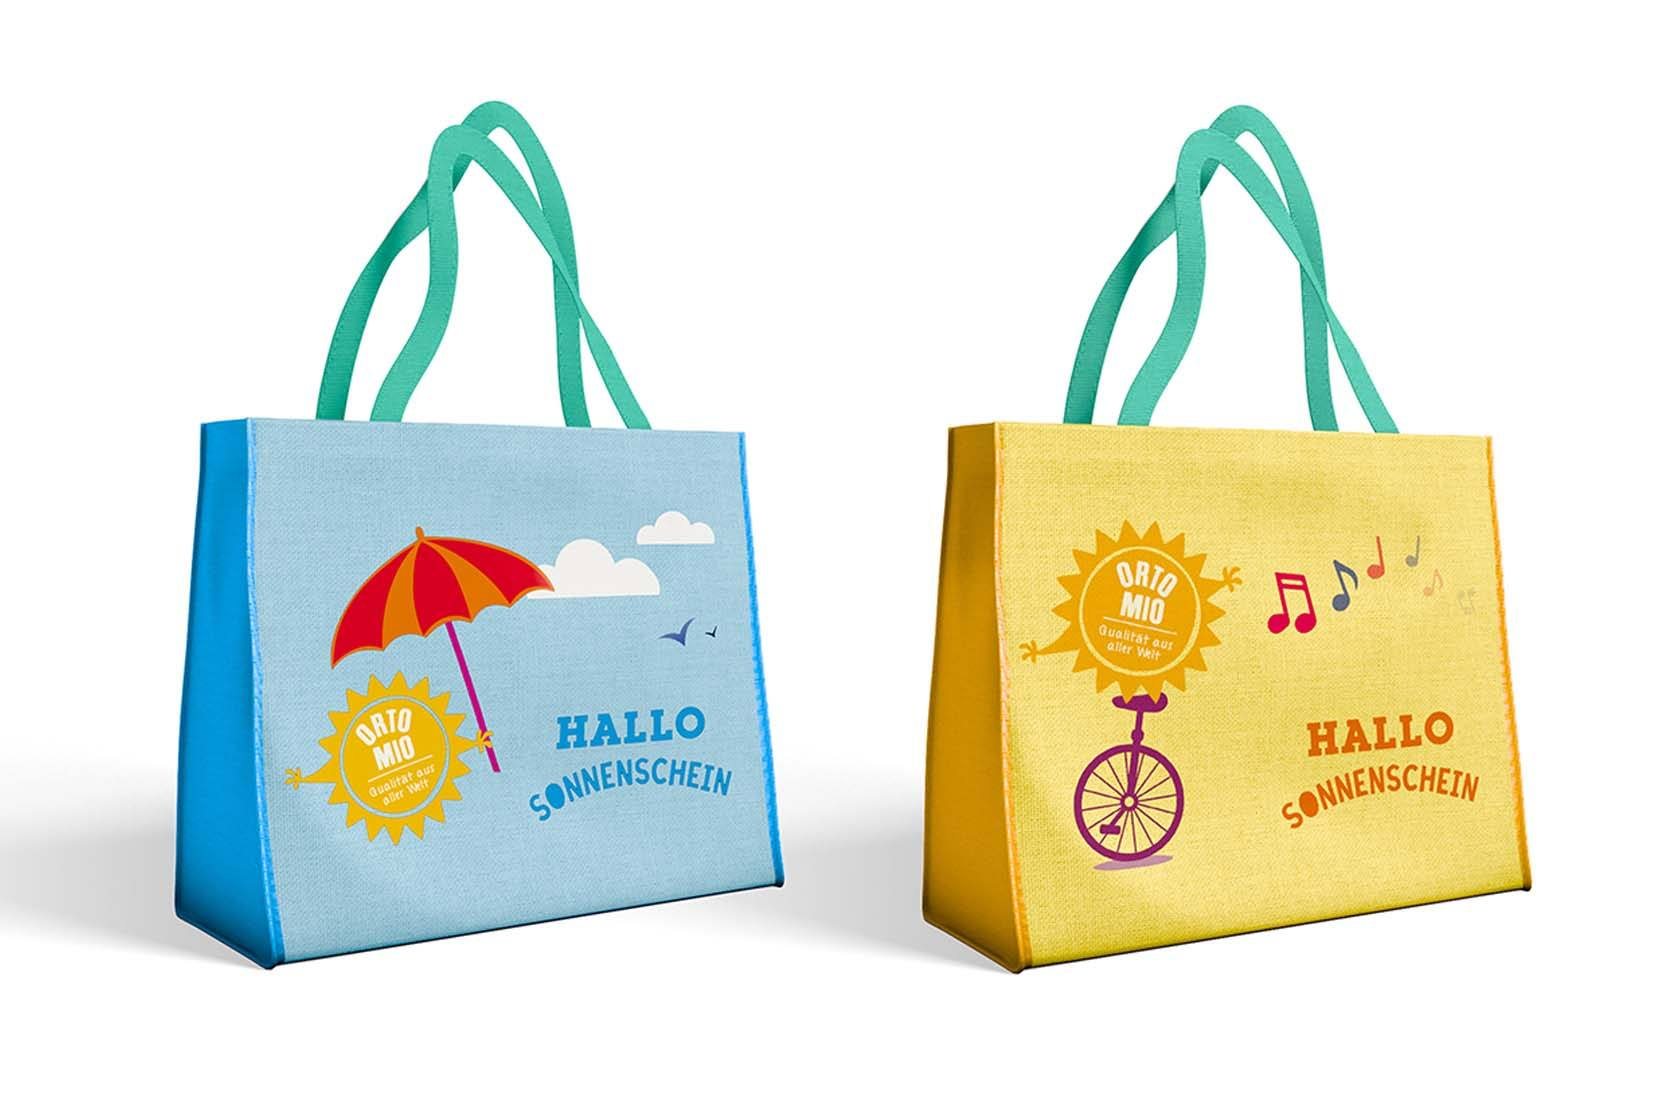 WMH-PENNY-ORTO-MIO-REWE-PENNY-SHOPPING-BAGS-WEB image